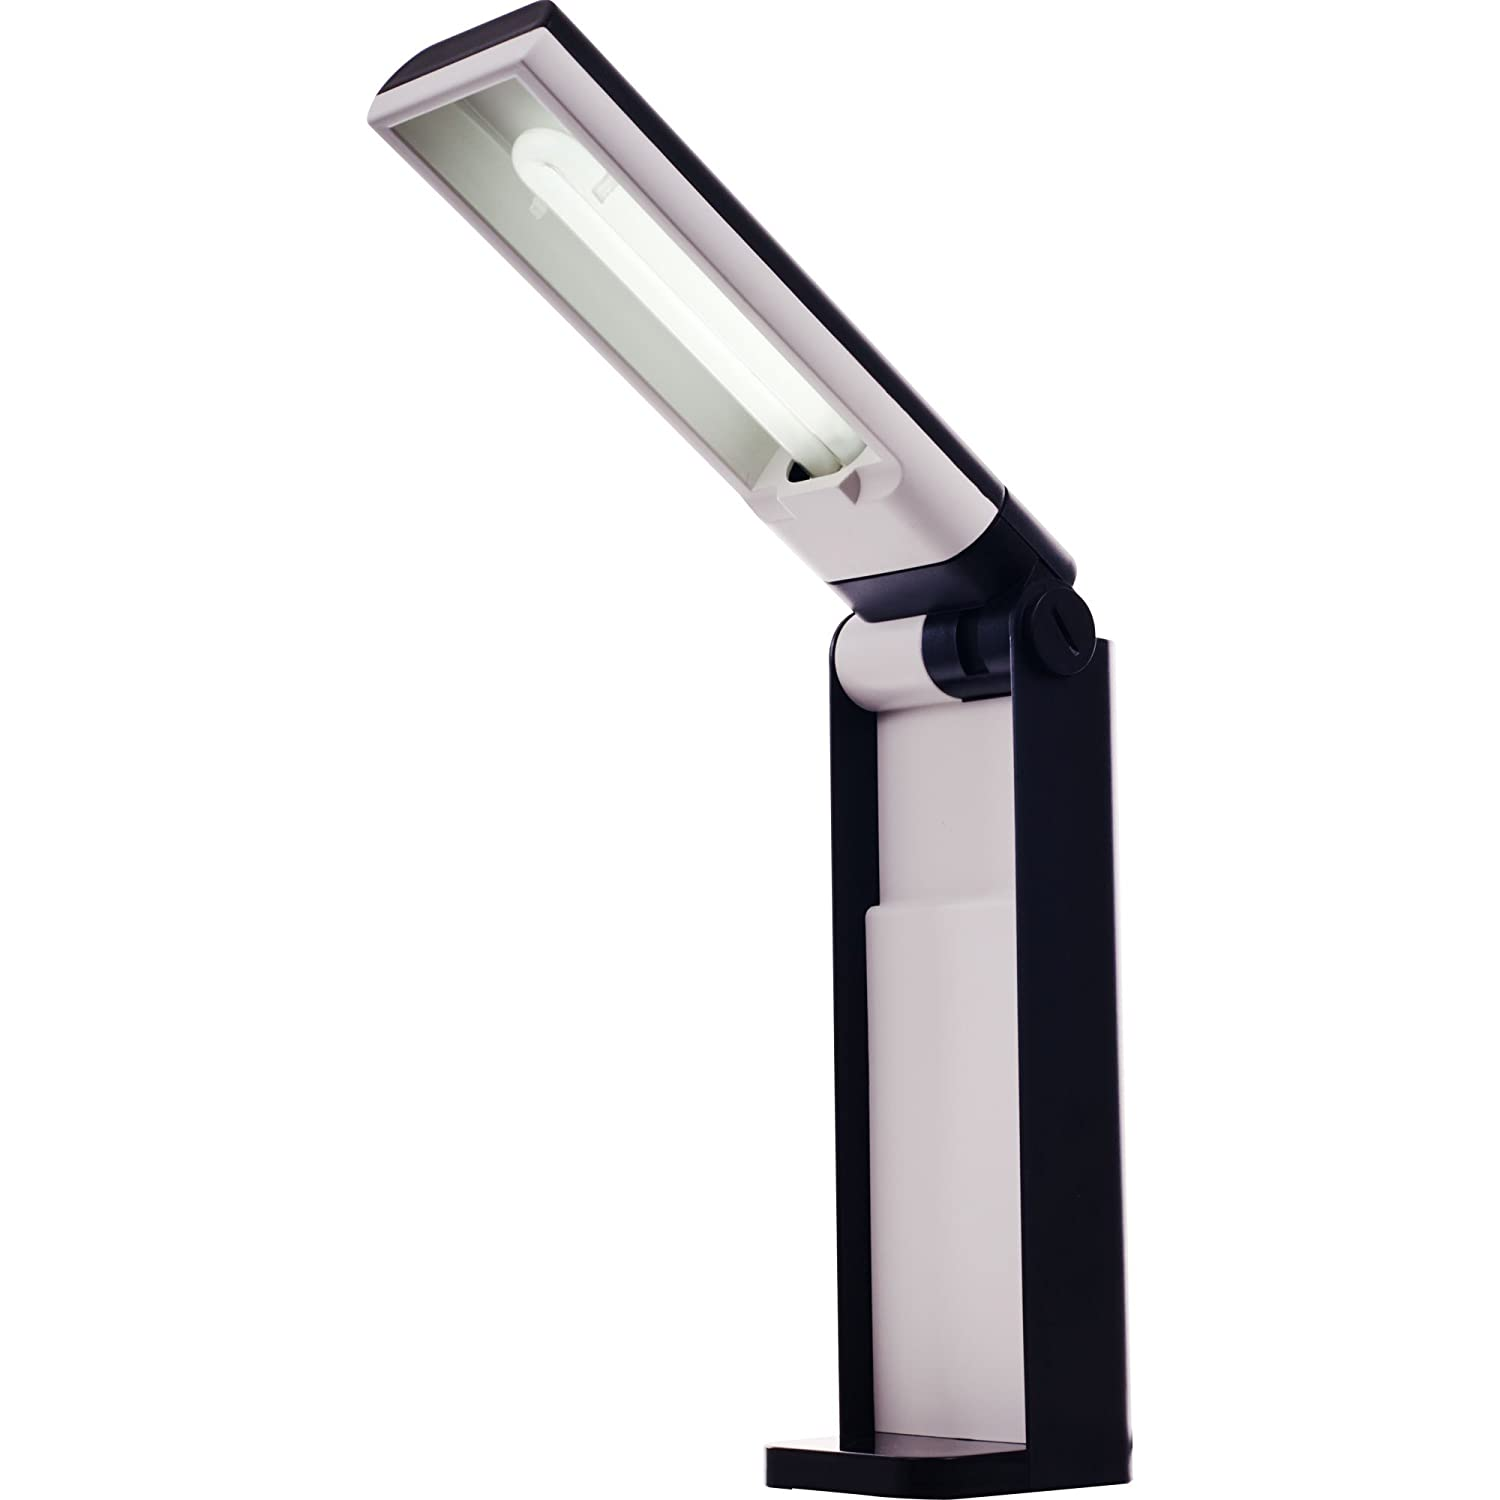 SuperBright 75 LIGHT02 Table Top Foldable Desk Lamp   Folding Lamps    Amazon.com